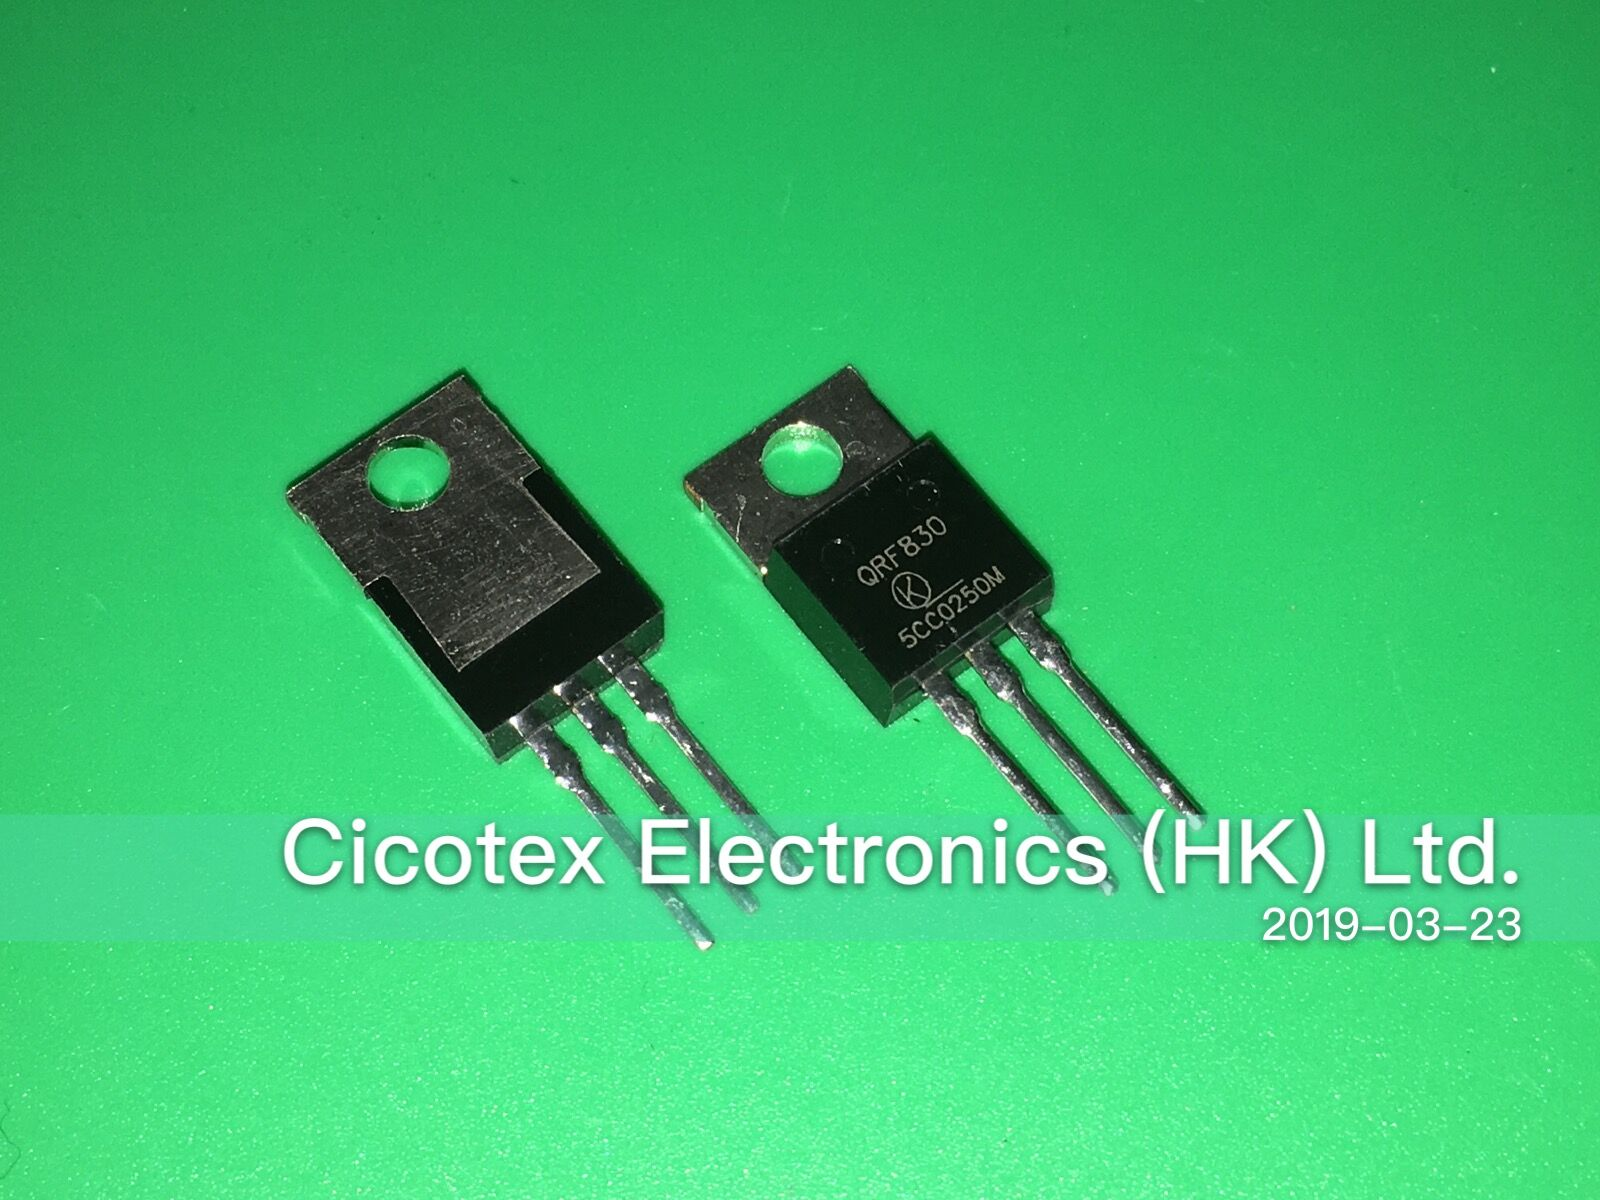 10pcs IRF830PBF IRF830 MOSFET N-CH 500V 4.5A TO-220 NEW HIGH QUALITY